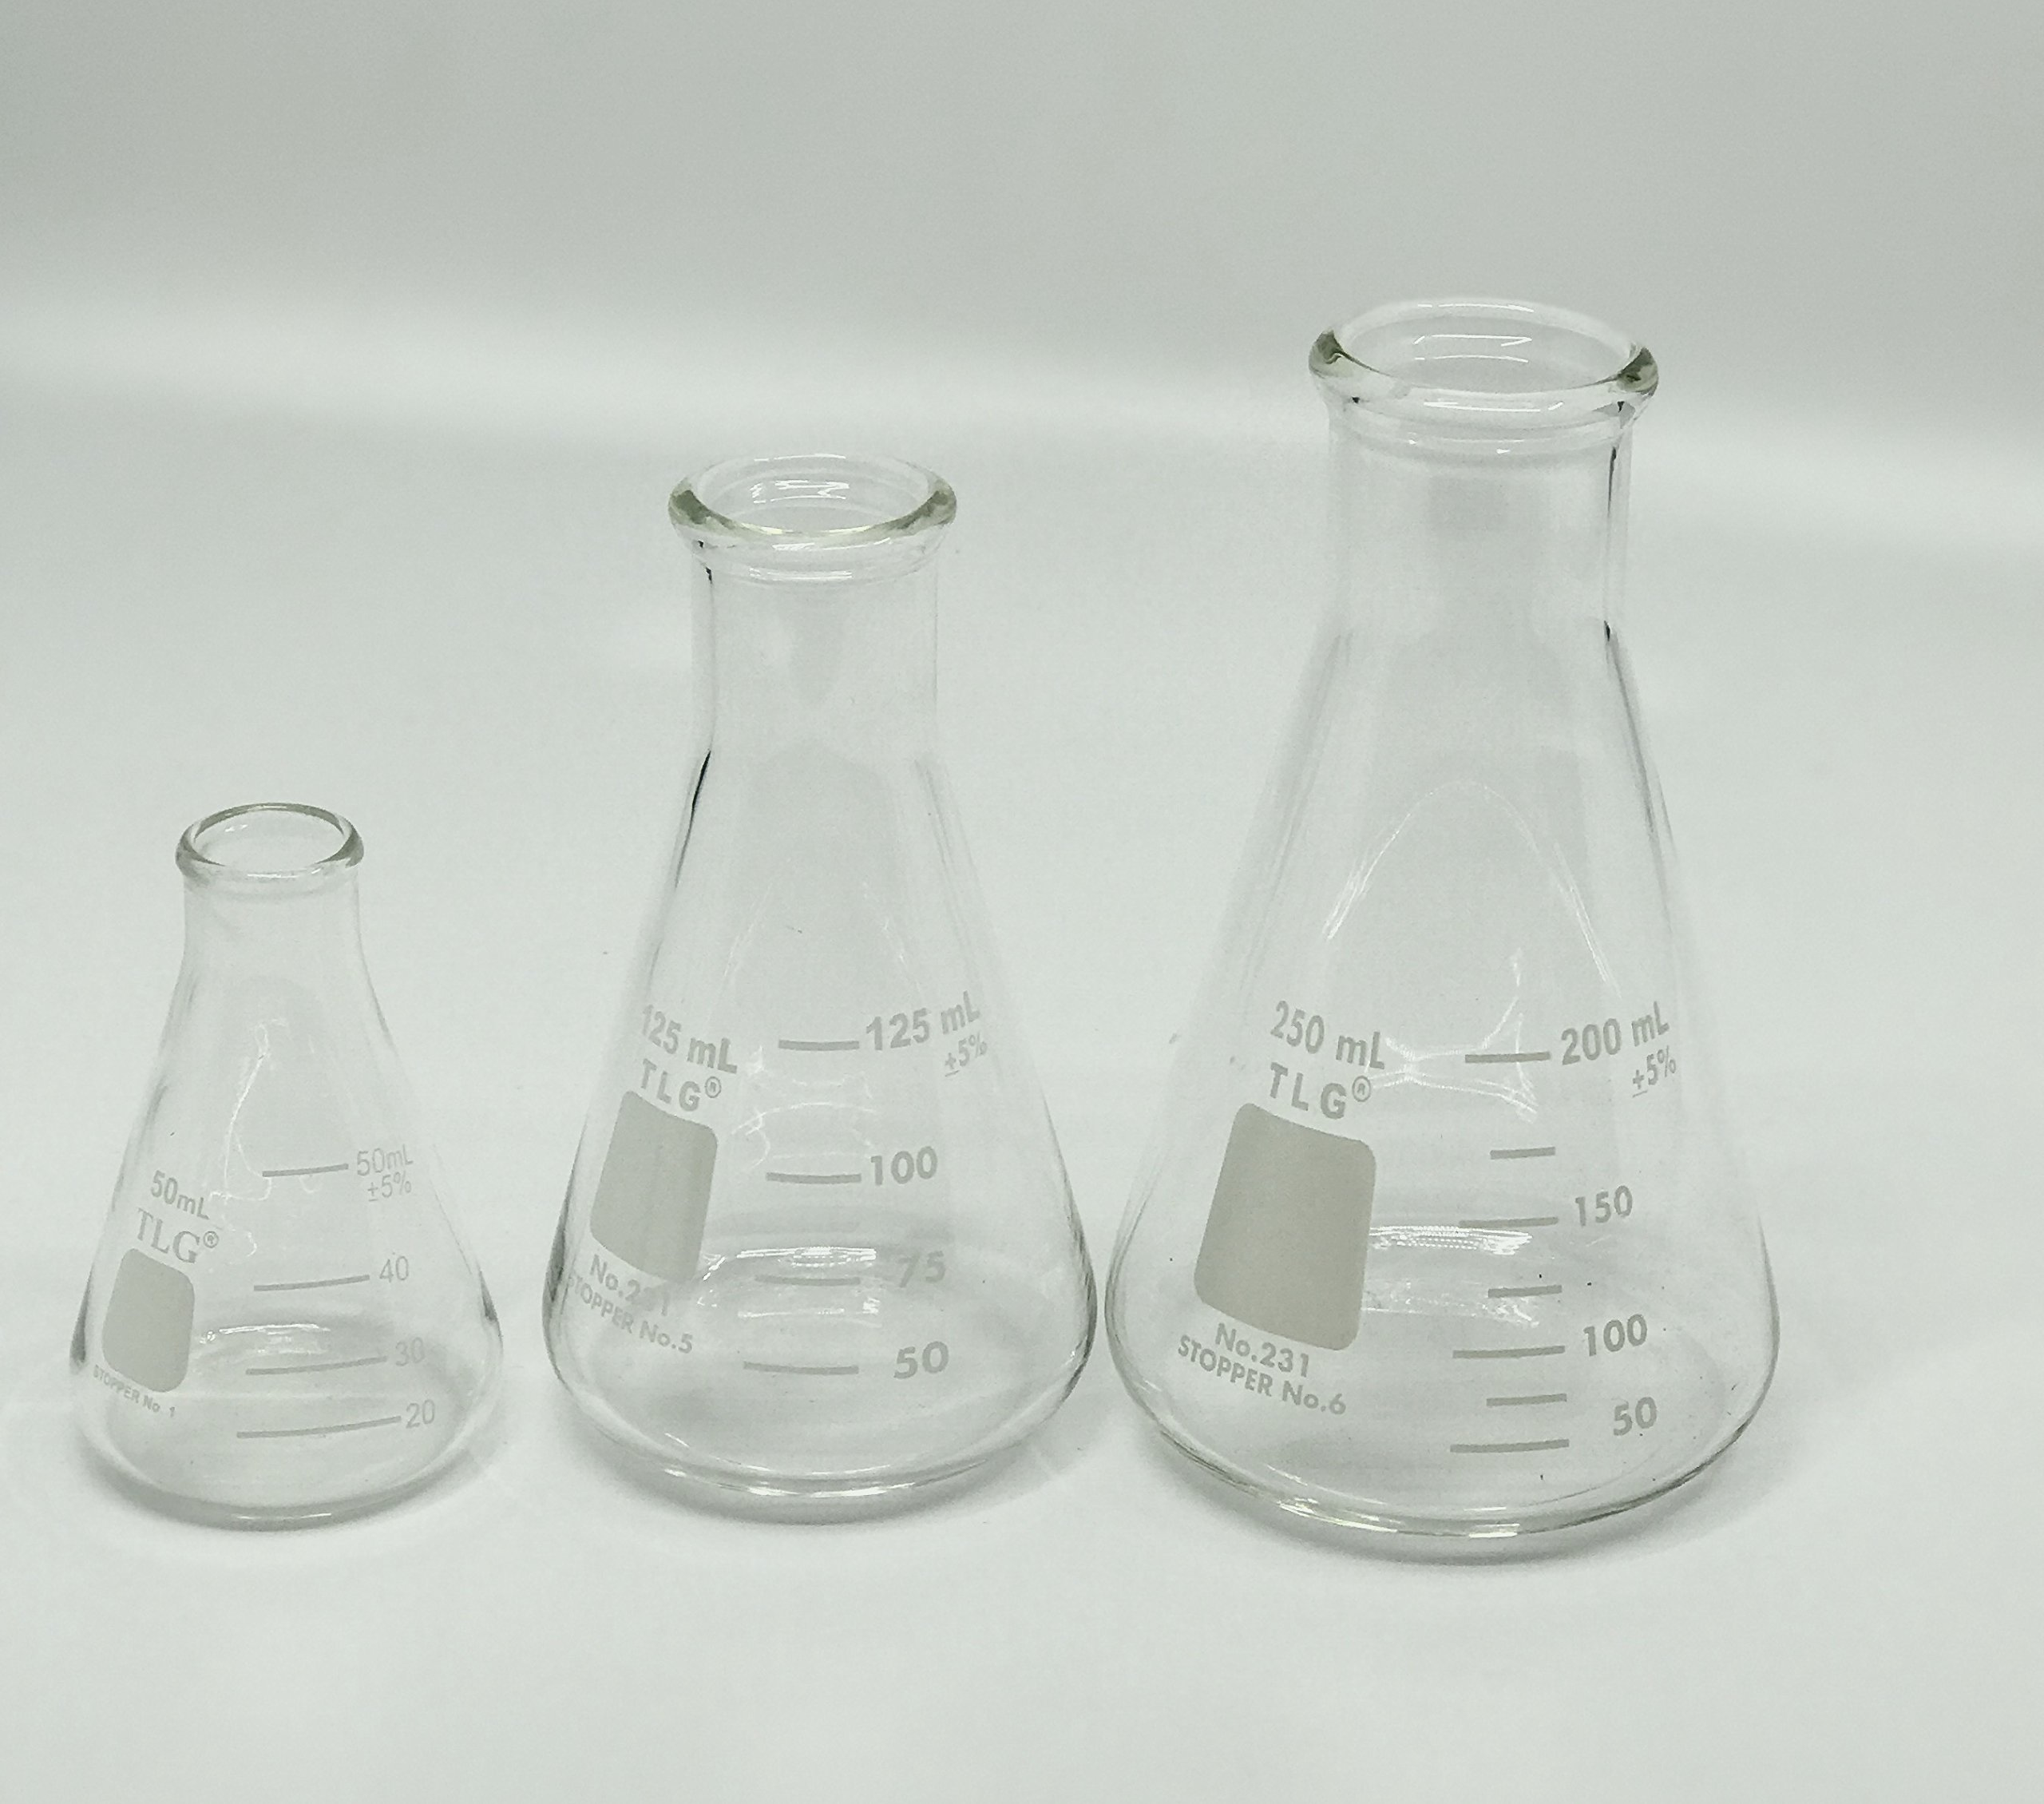 Chem Science INC 231.202.SE3 Erlenmeyer Flask Set, Narrow Neck with Graduation, 50, 125, 250 mL (Pack of 3)